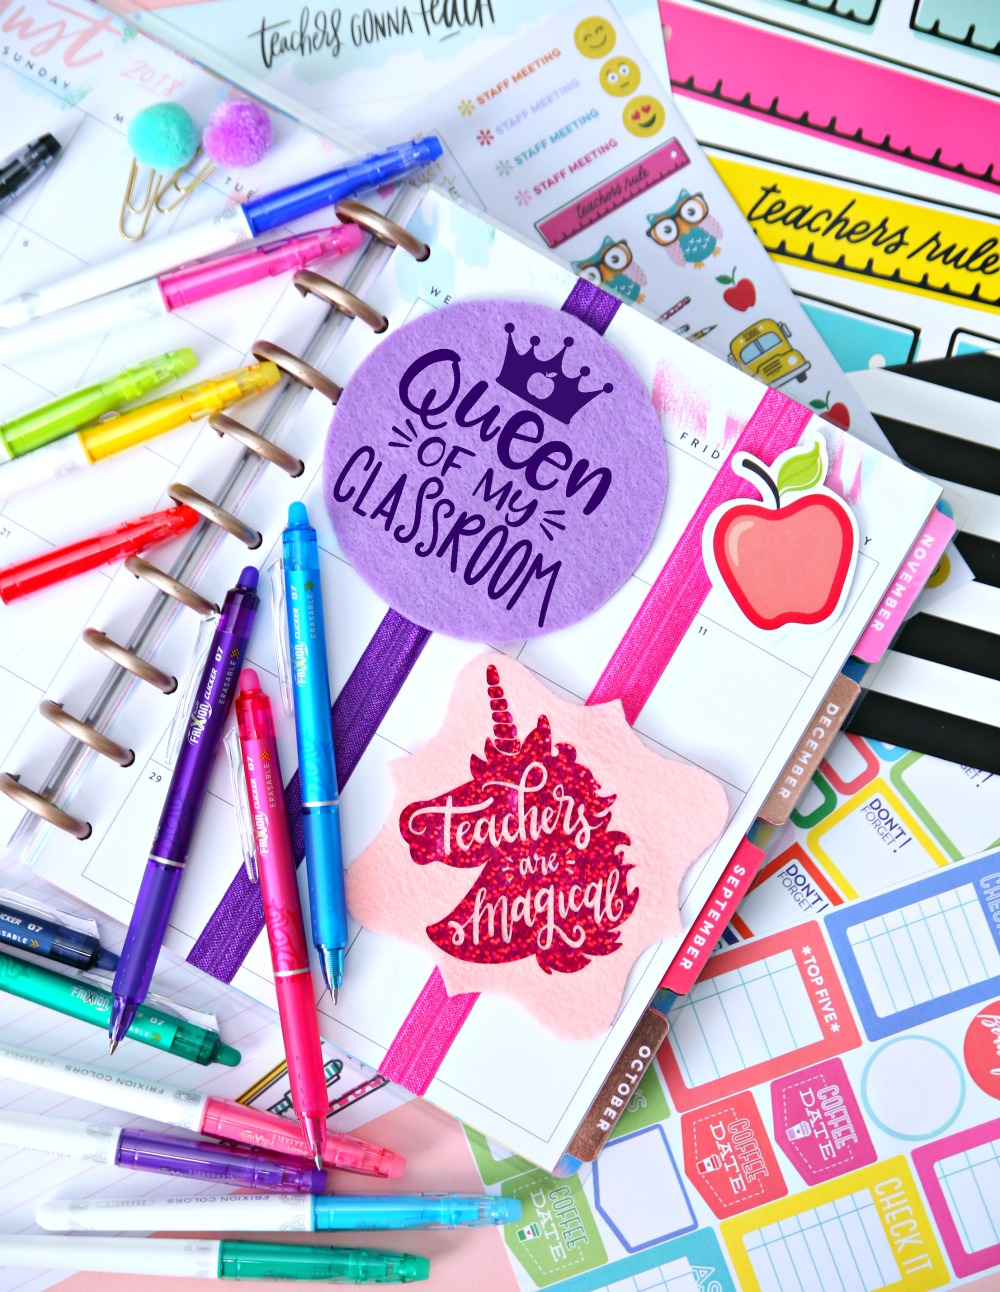 Planner Bookmarks Teacher Gift Free SVG Cut File - Elastic Bookmarks - Every teacher needs a planner and now they can add these cute Planner Bookmarks to make it extra special!